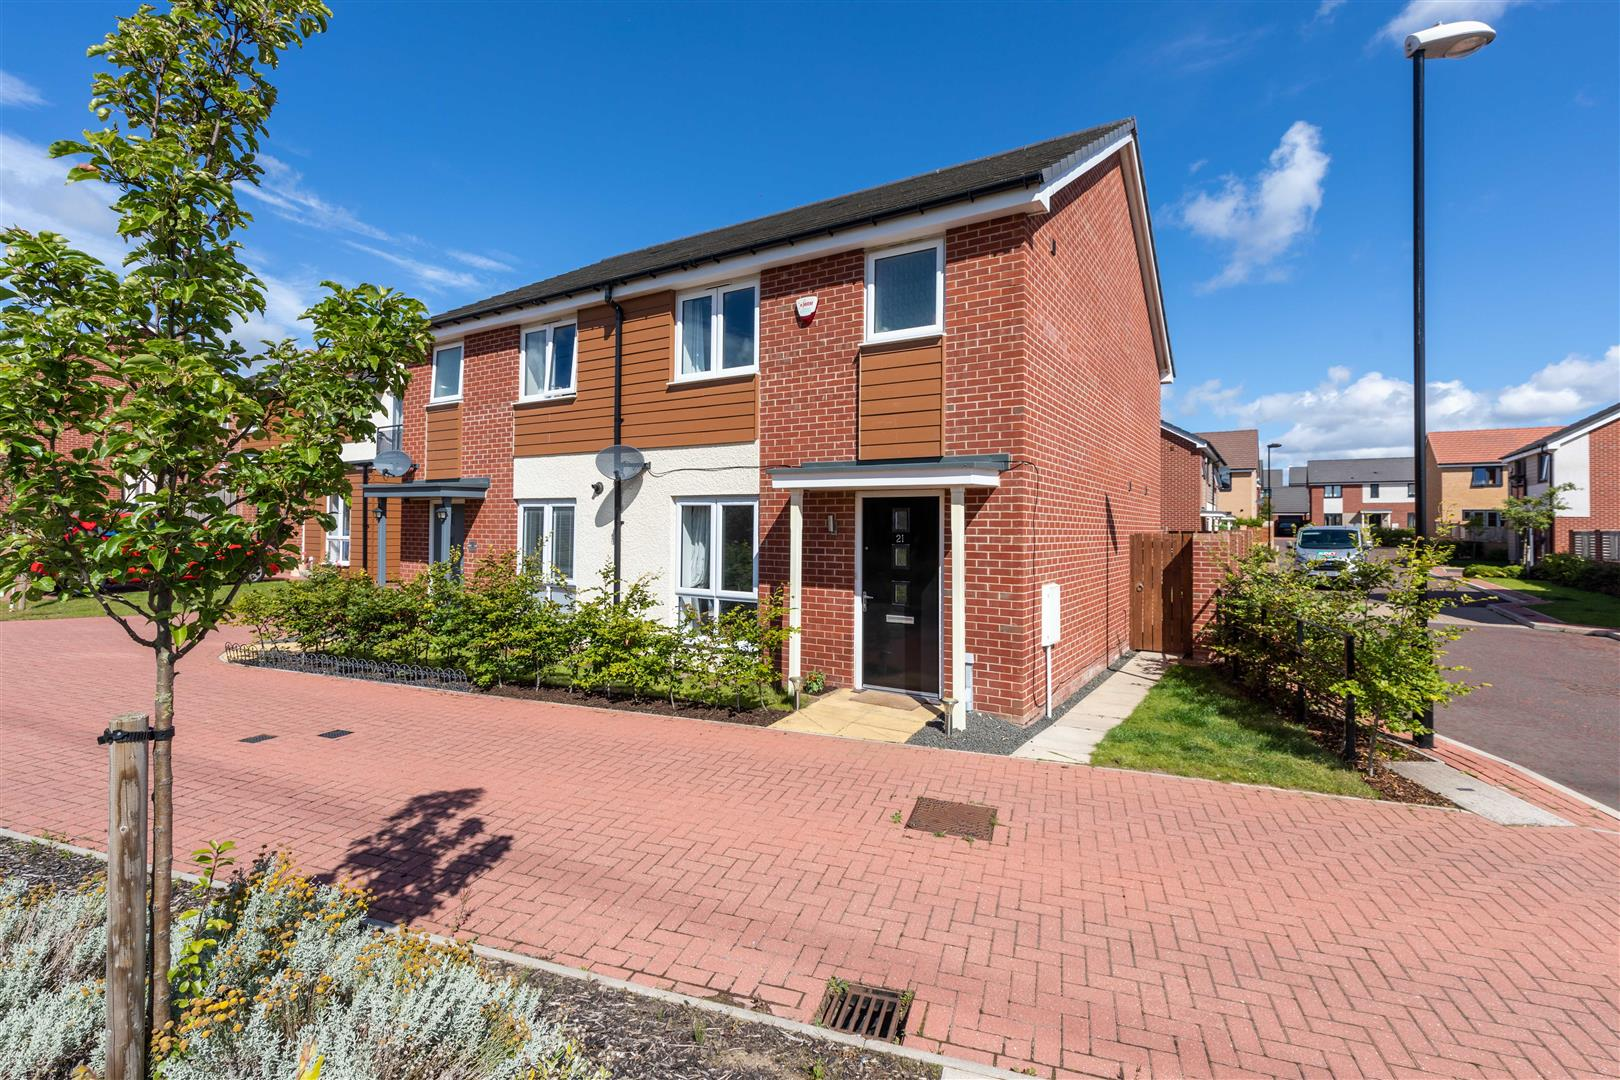 3 bed semi-detached house for sale in Great Park, NE13 9DE, NE13